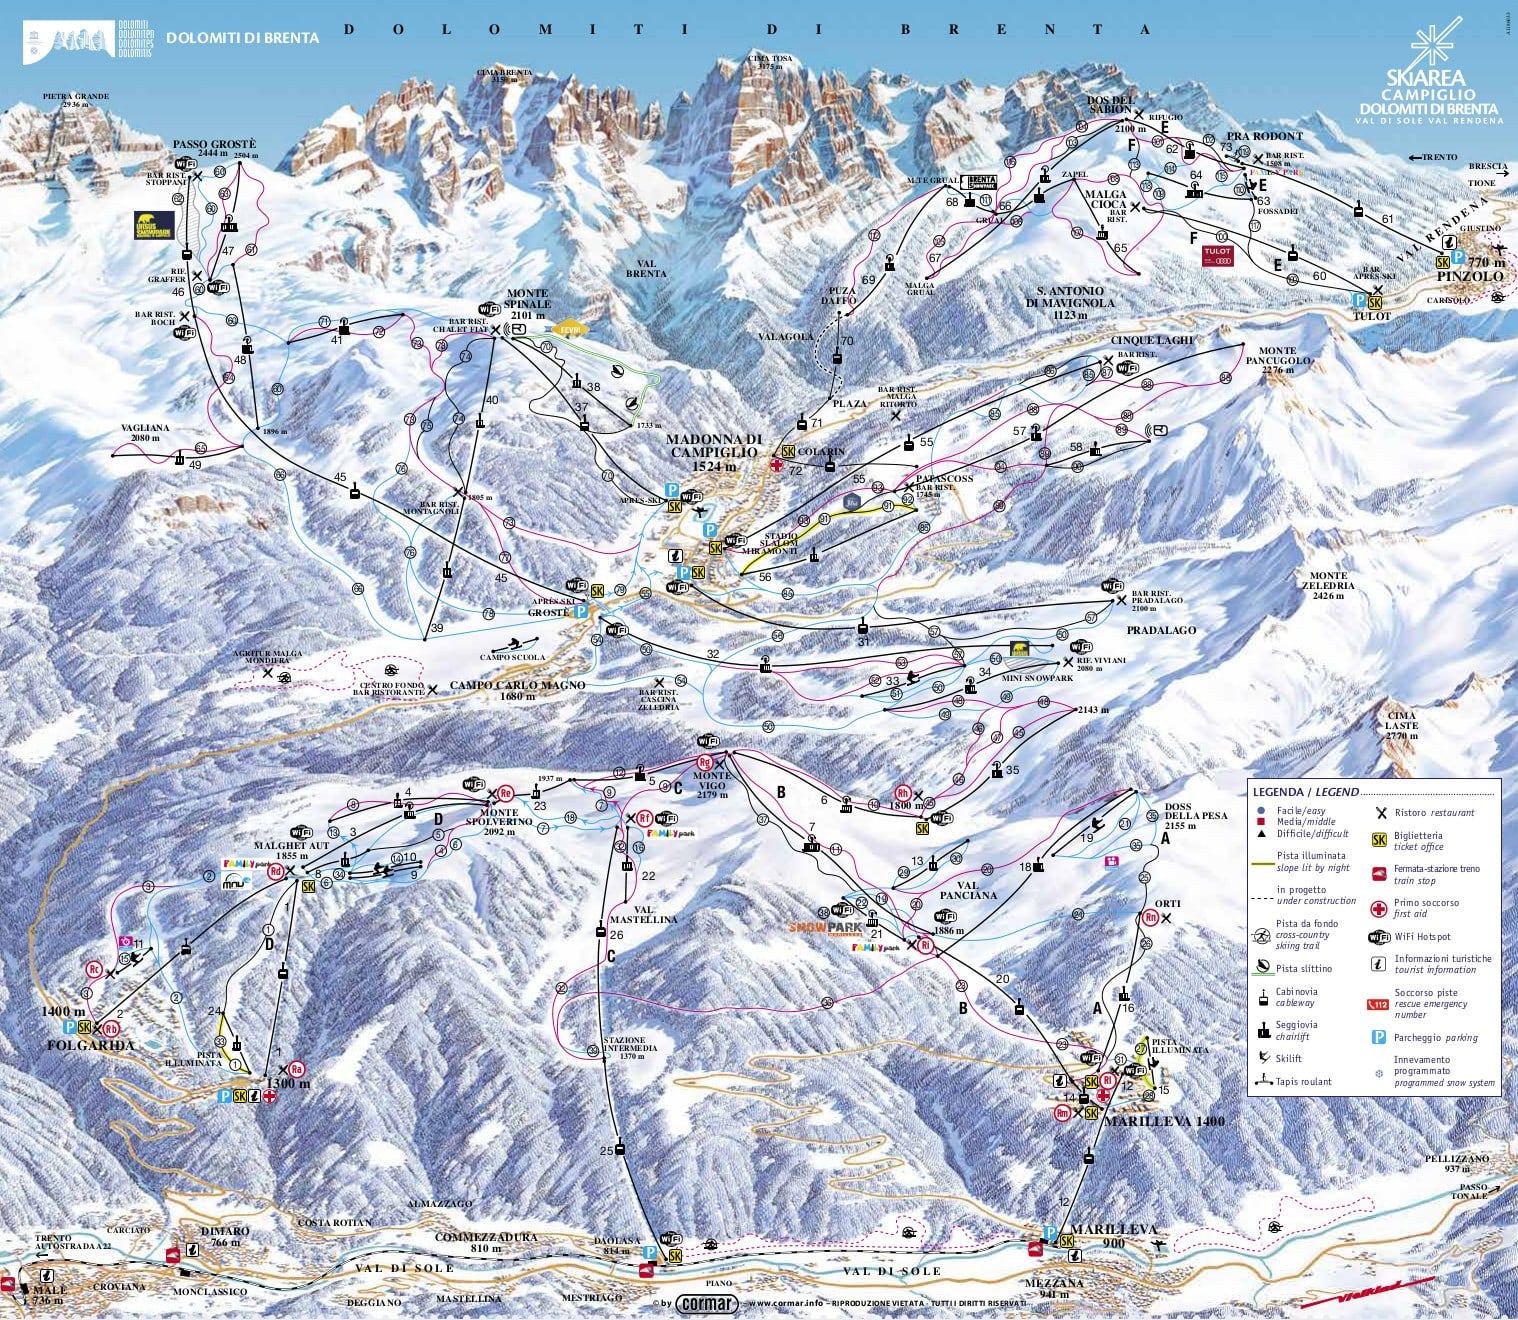 Folgarida-Marilleva Piste / Trail Map